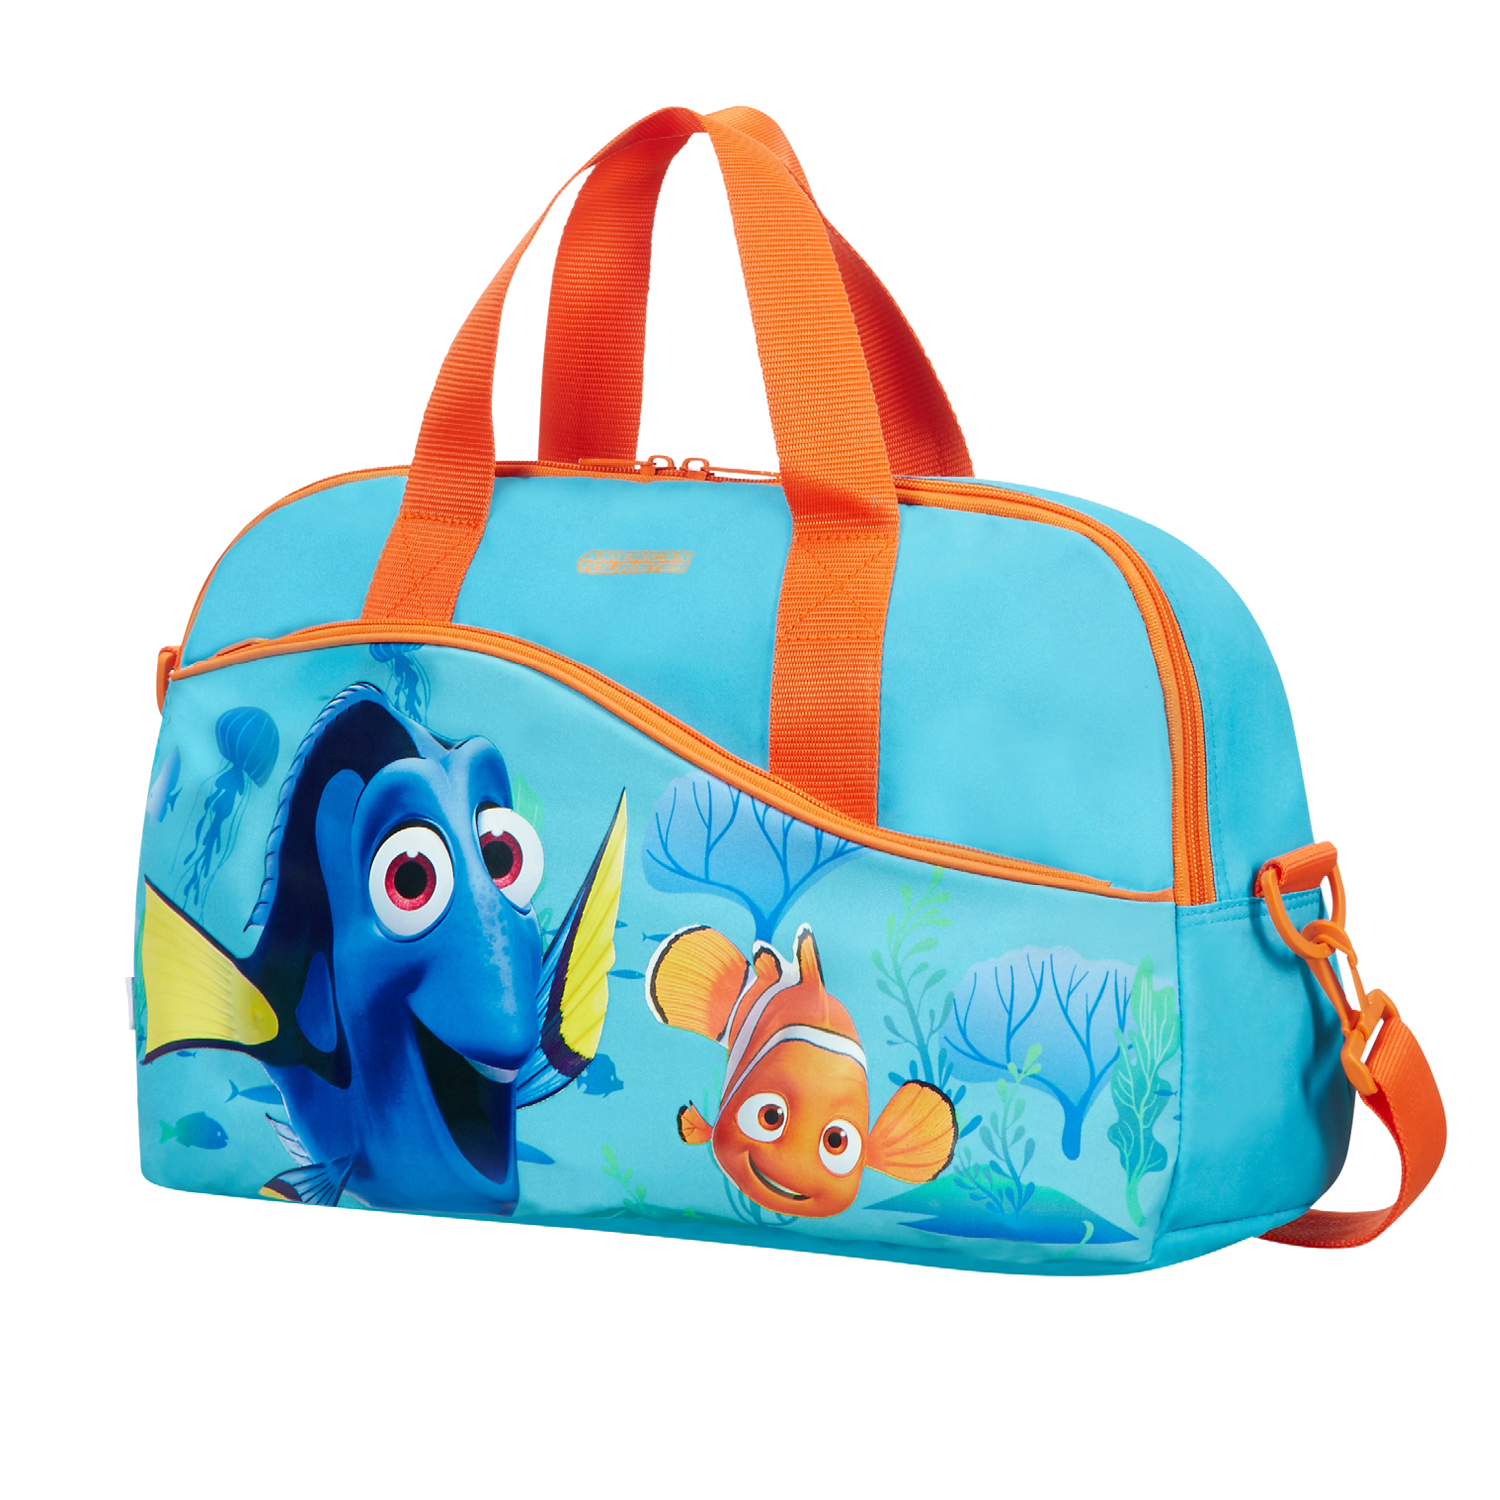 AMERICAN TOURISTER - Παιδική τσάντα Disney by American Tourister μπλε